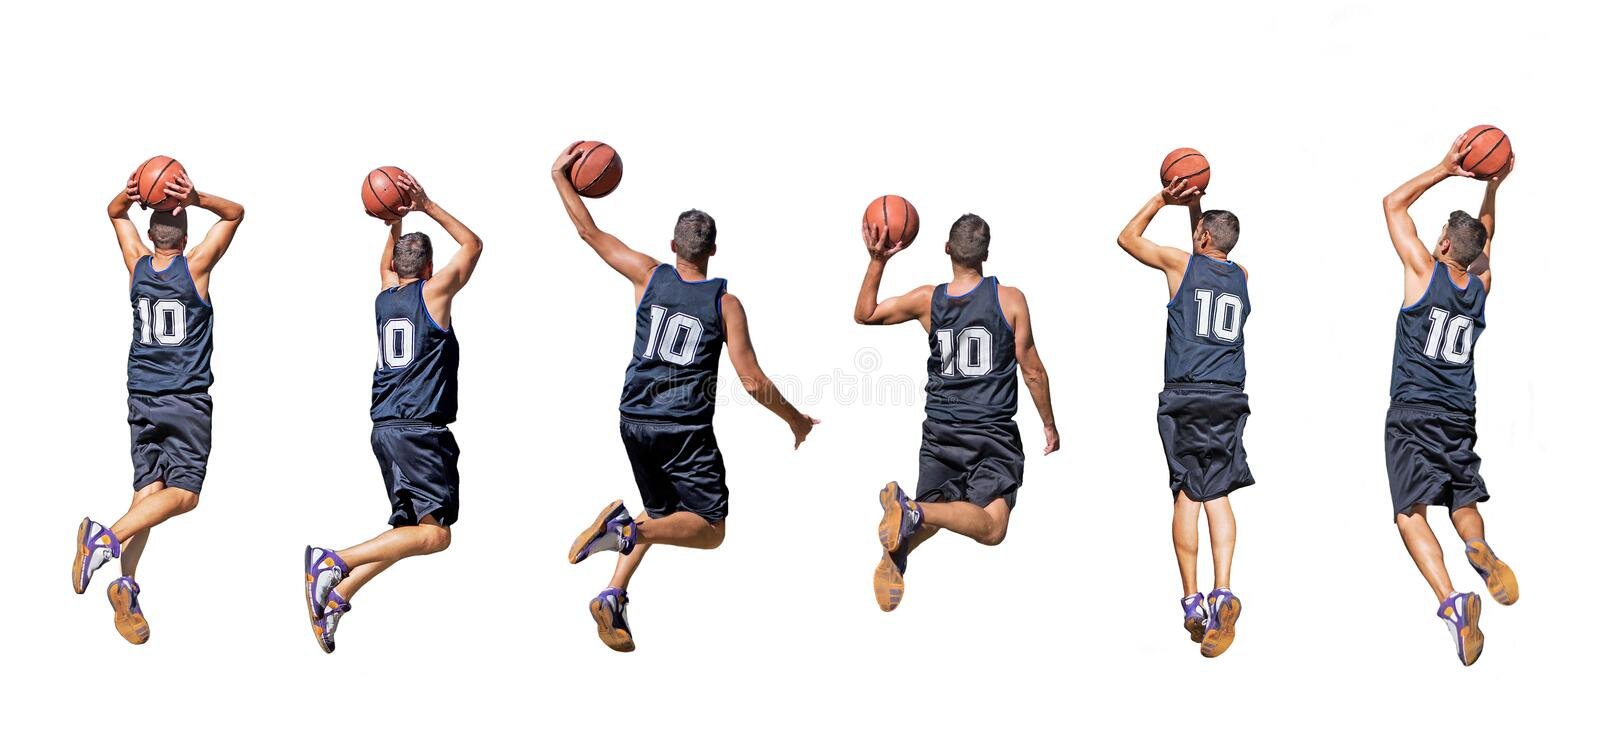 Basketball player silhouettes royalty free stock photography